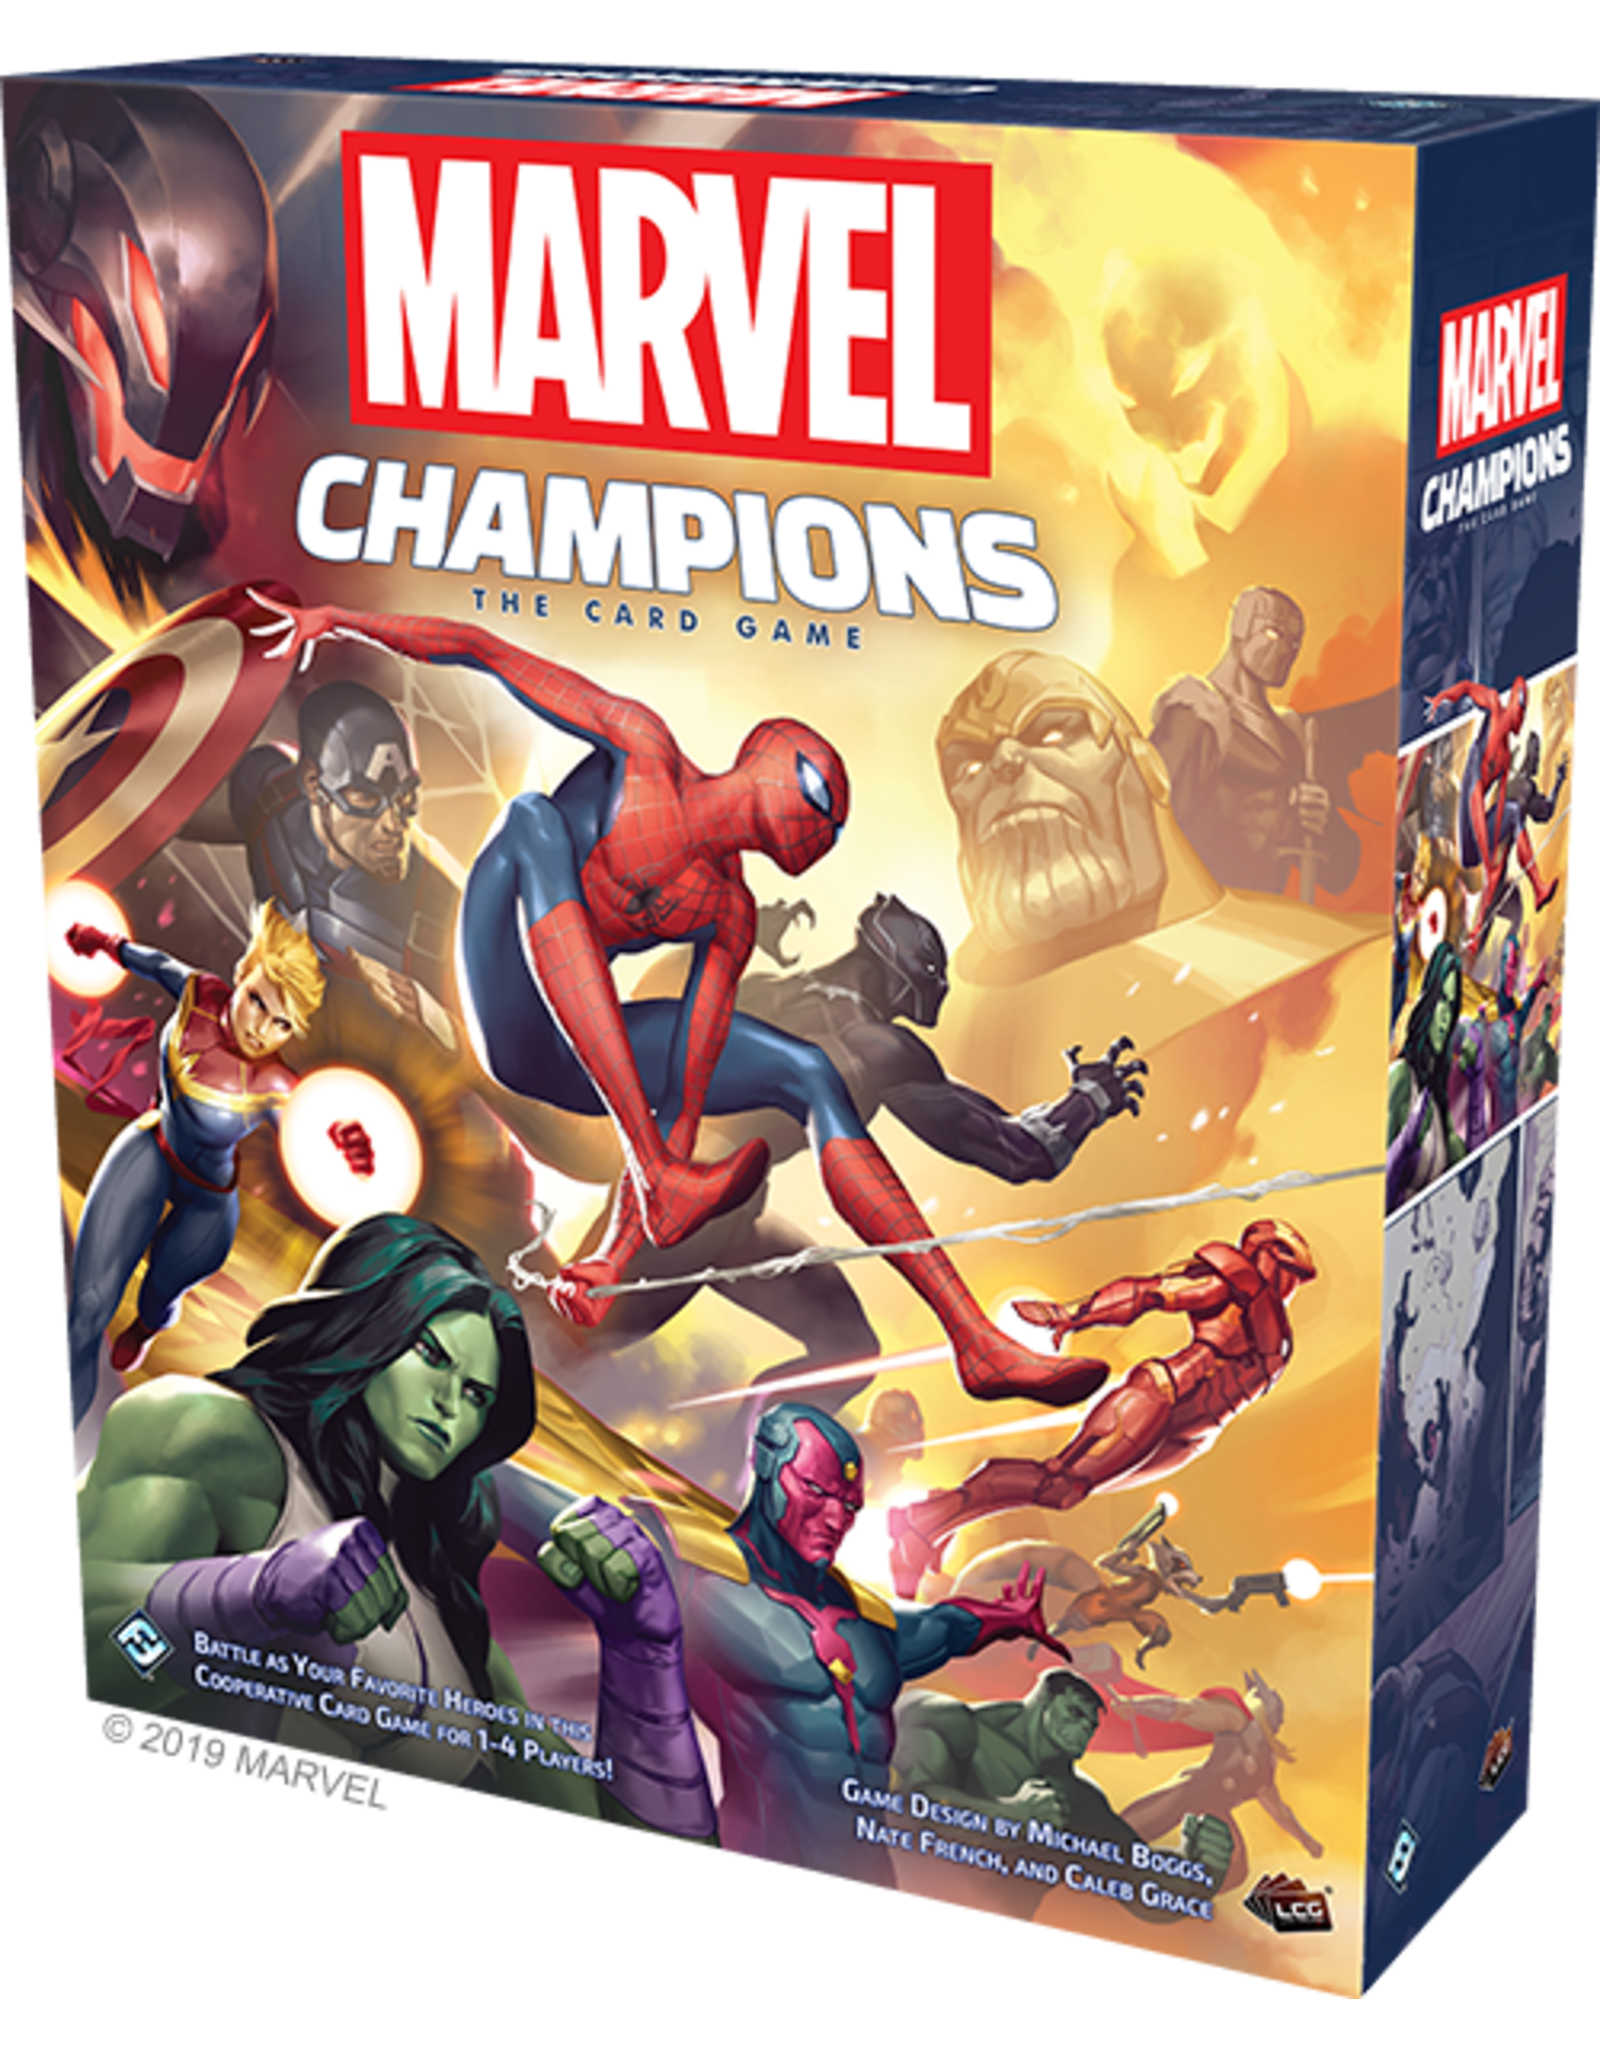 FANTASY FLIGHT MARVEL CHAMPIONS LCG (English)